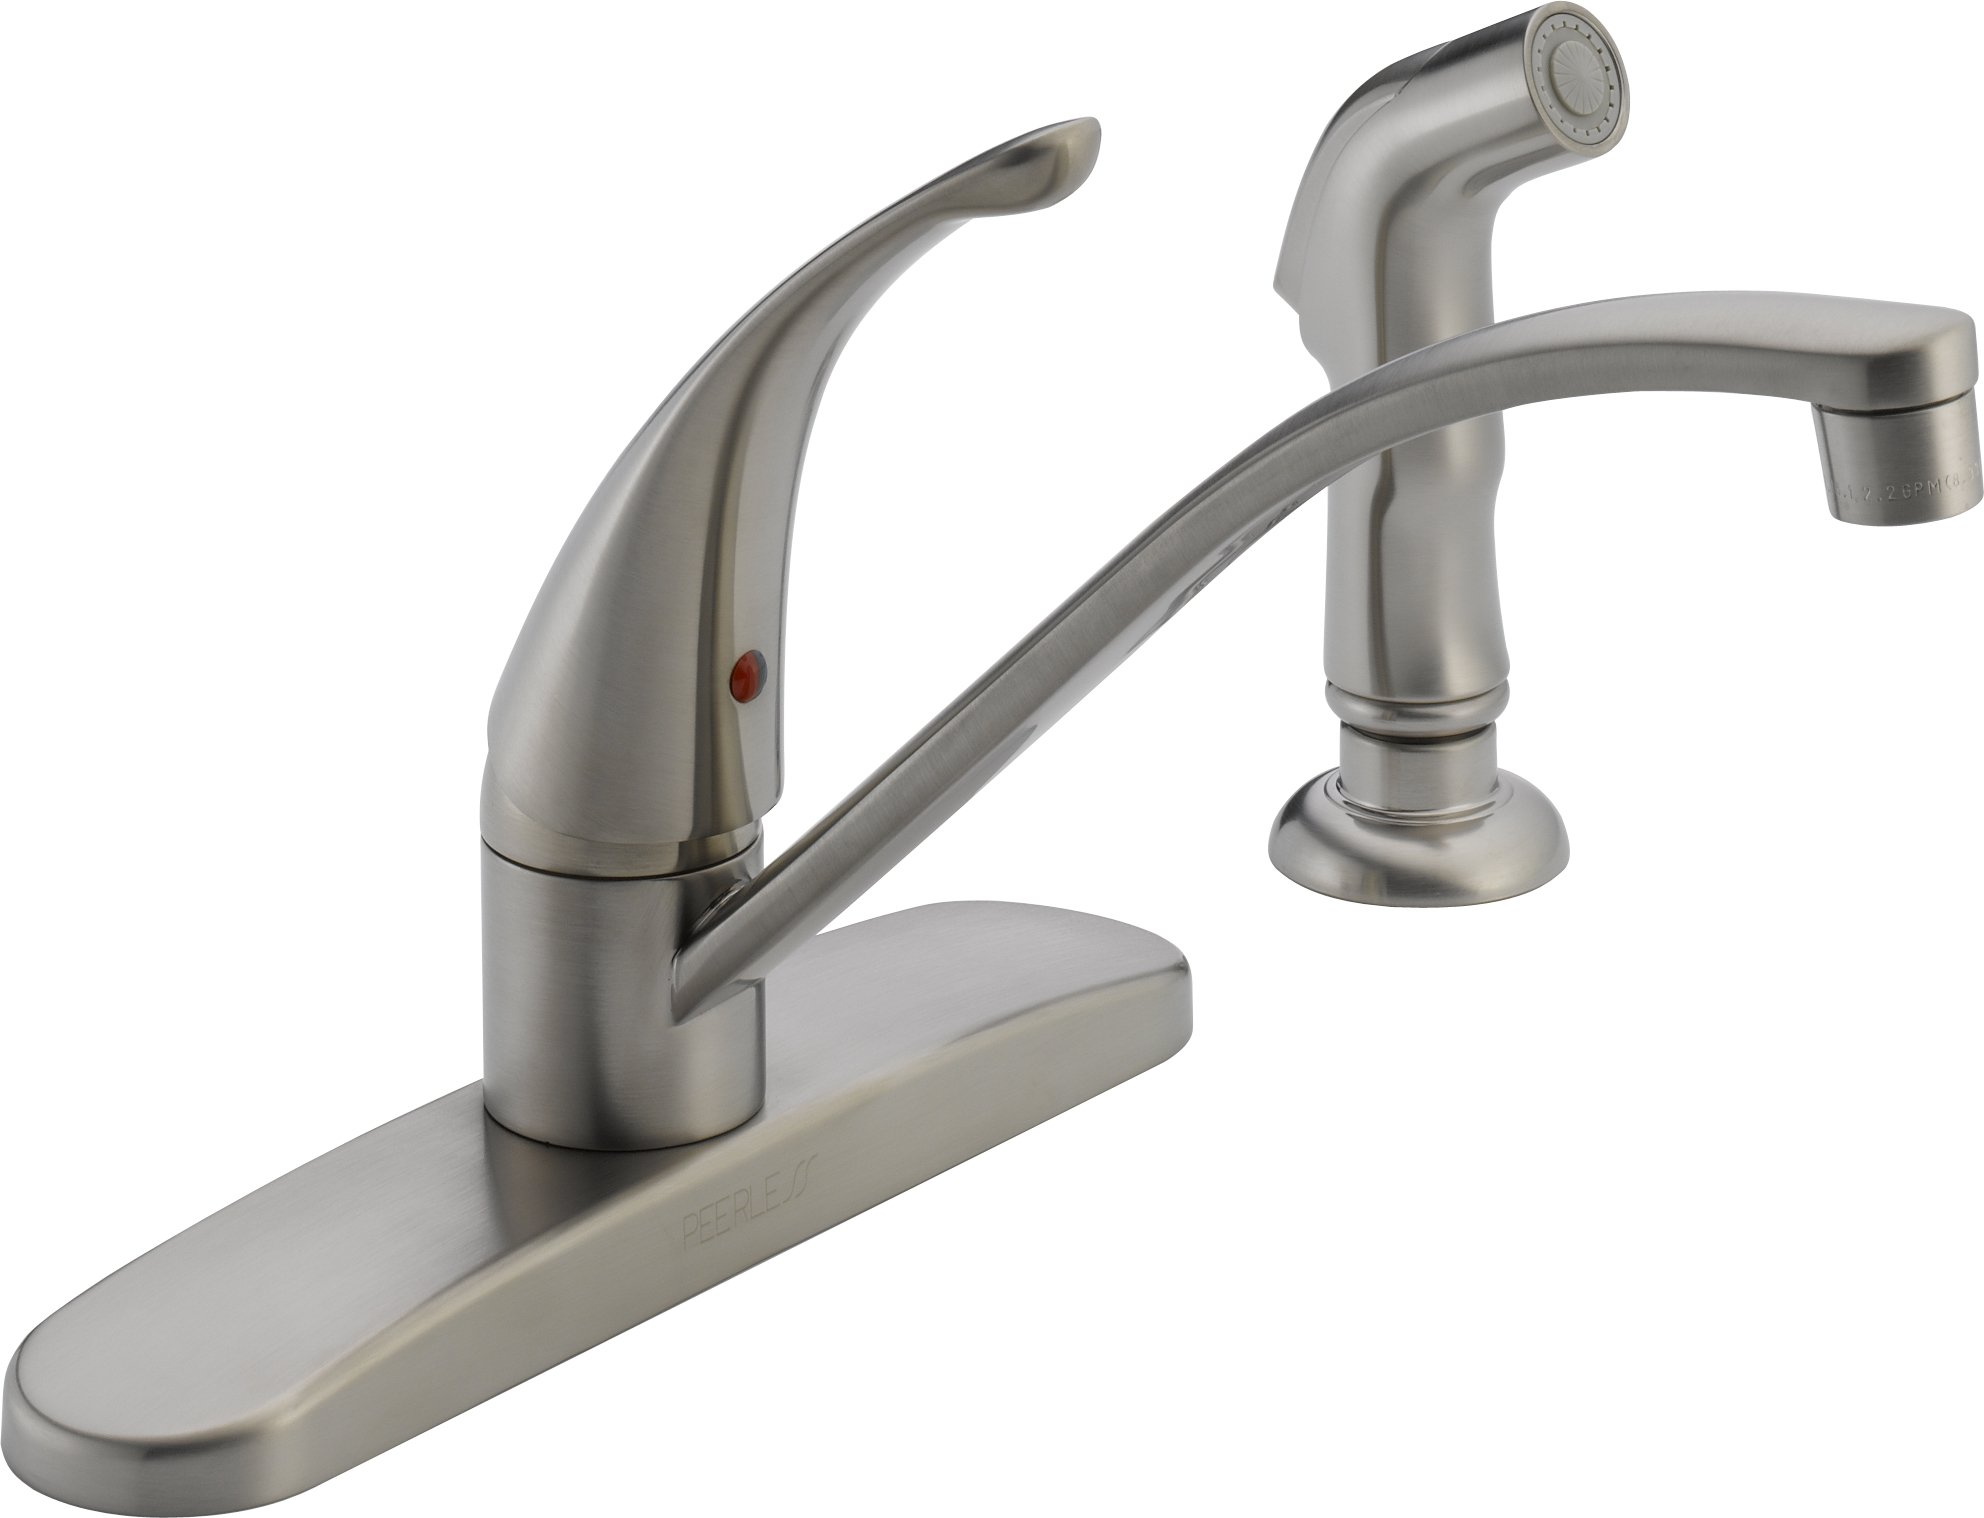 Peerless P188500LF-SS 1 Handle Side Spray Kitchen Faucet, Stainless